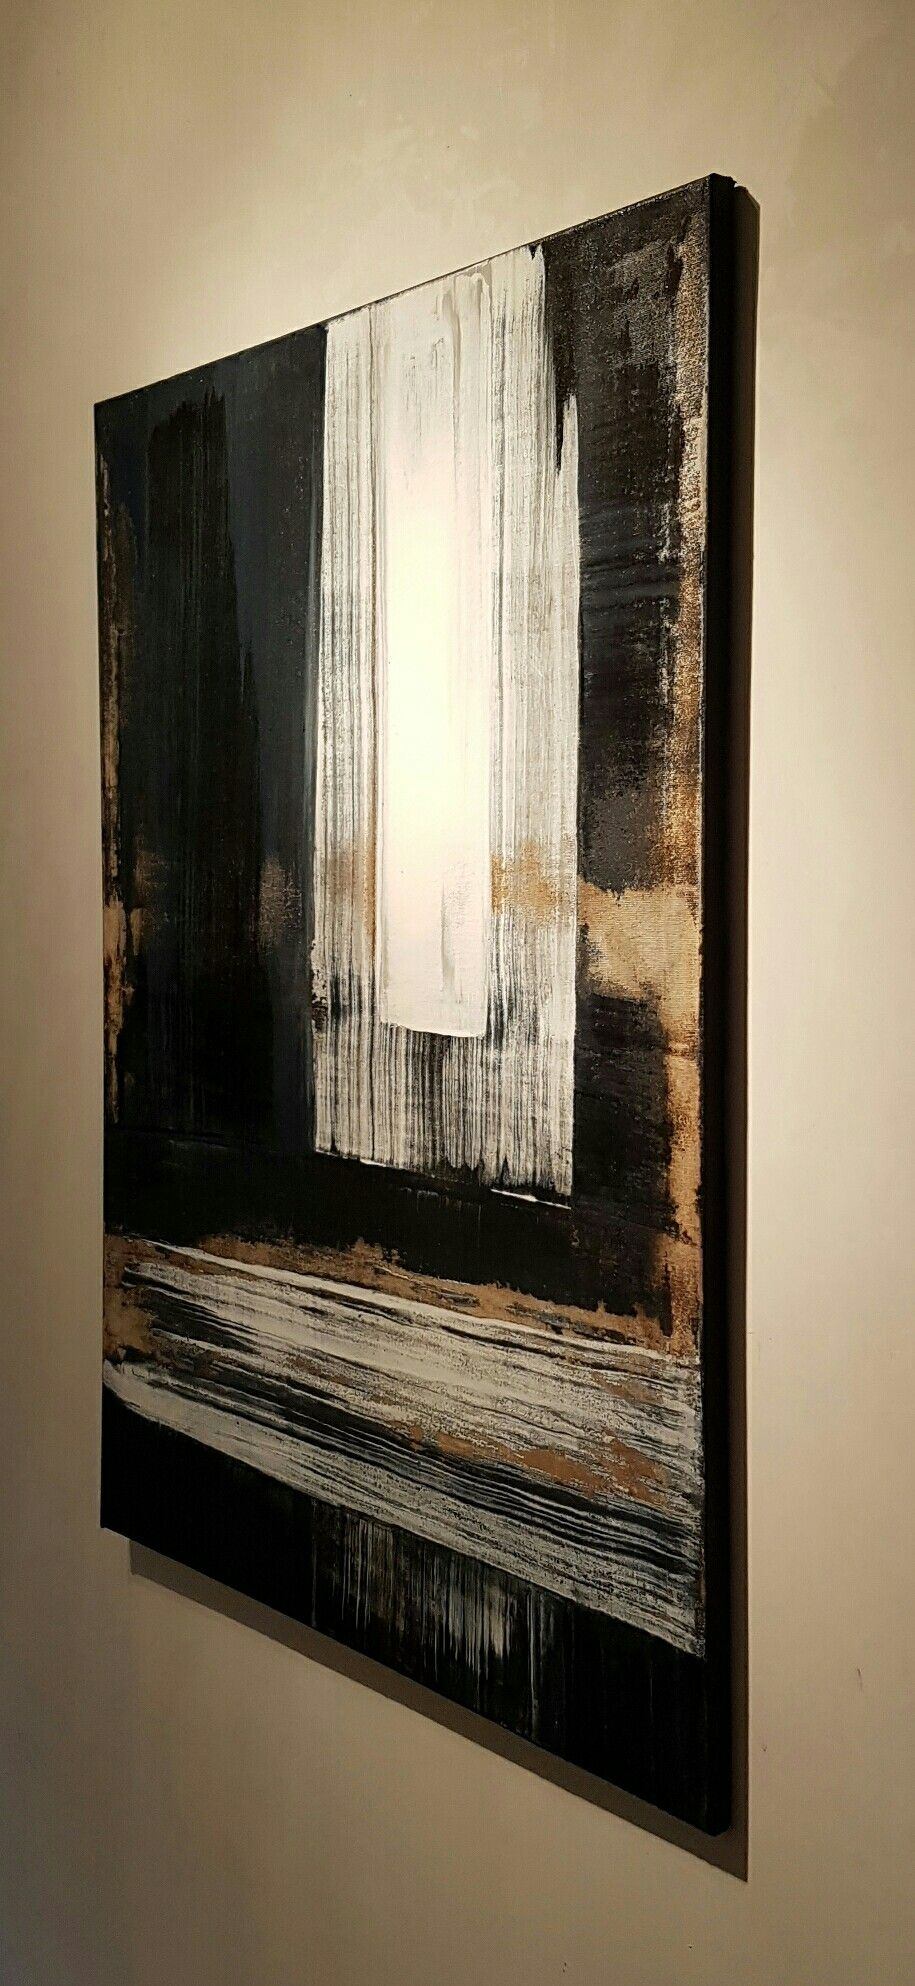 Frédéric Halbreich | Abstract Painting | Pinterest | Abstrakte ...